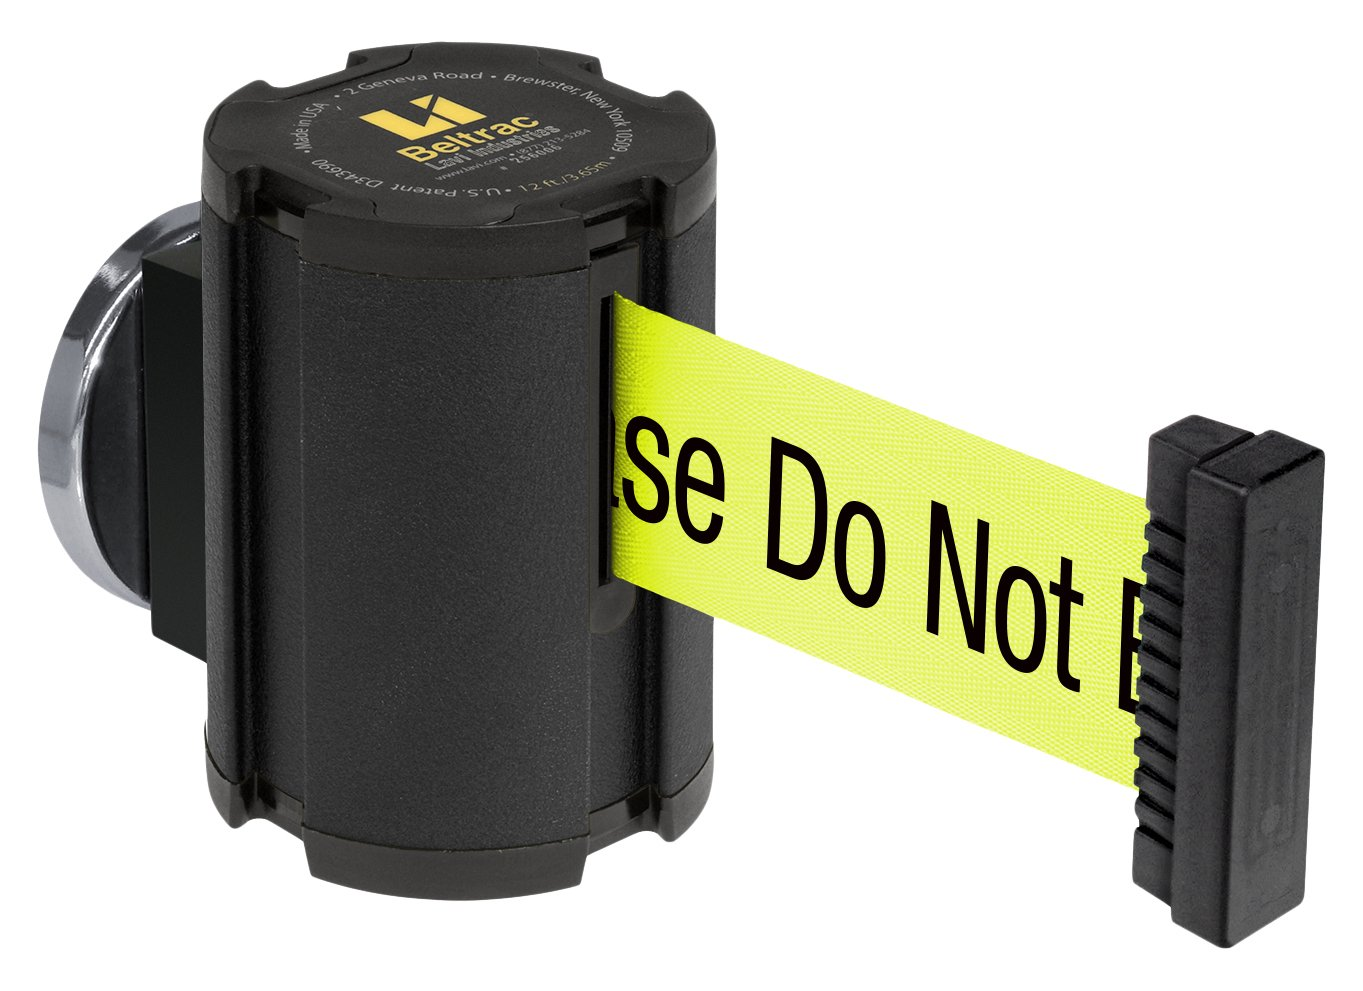 Wrinkle Black withCaution Please Do Not Enter Belt Lavi Industries 50-41300MG//WB//FY//S6 Beltrac 13 Magnetic Wall-Mounted Retractable Belt Barrier